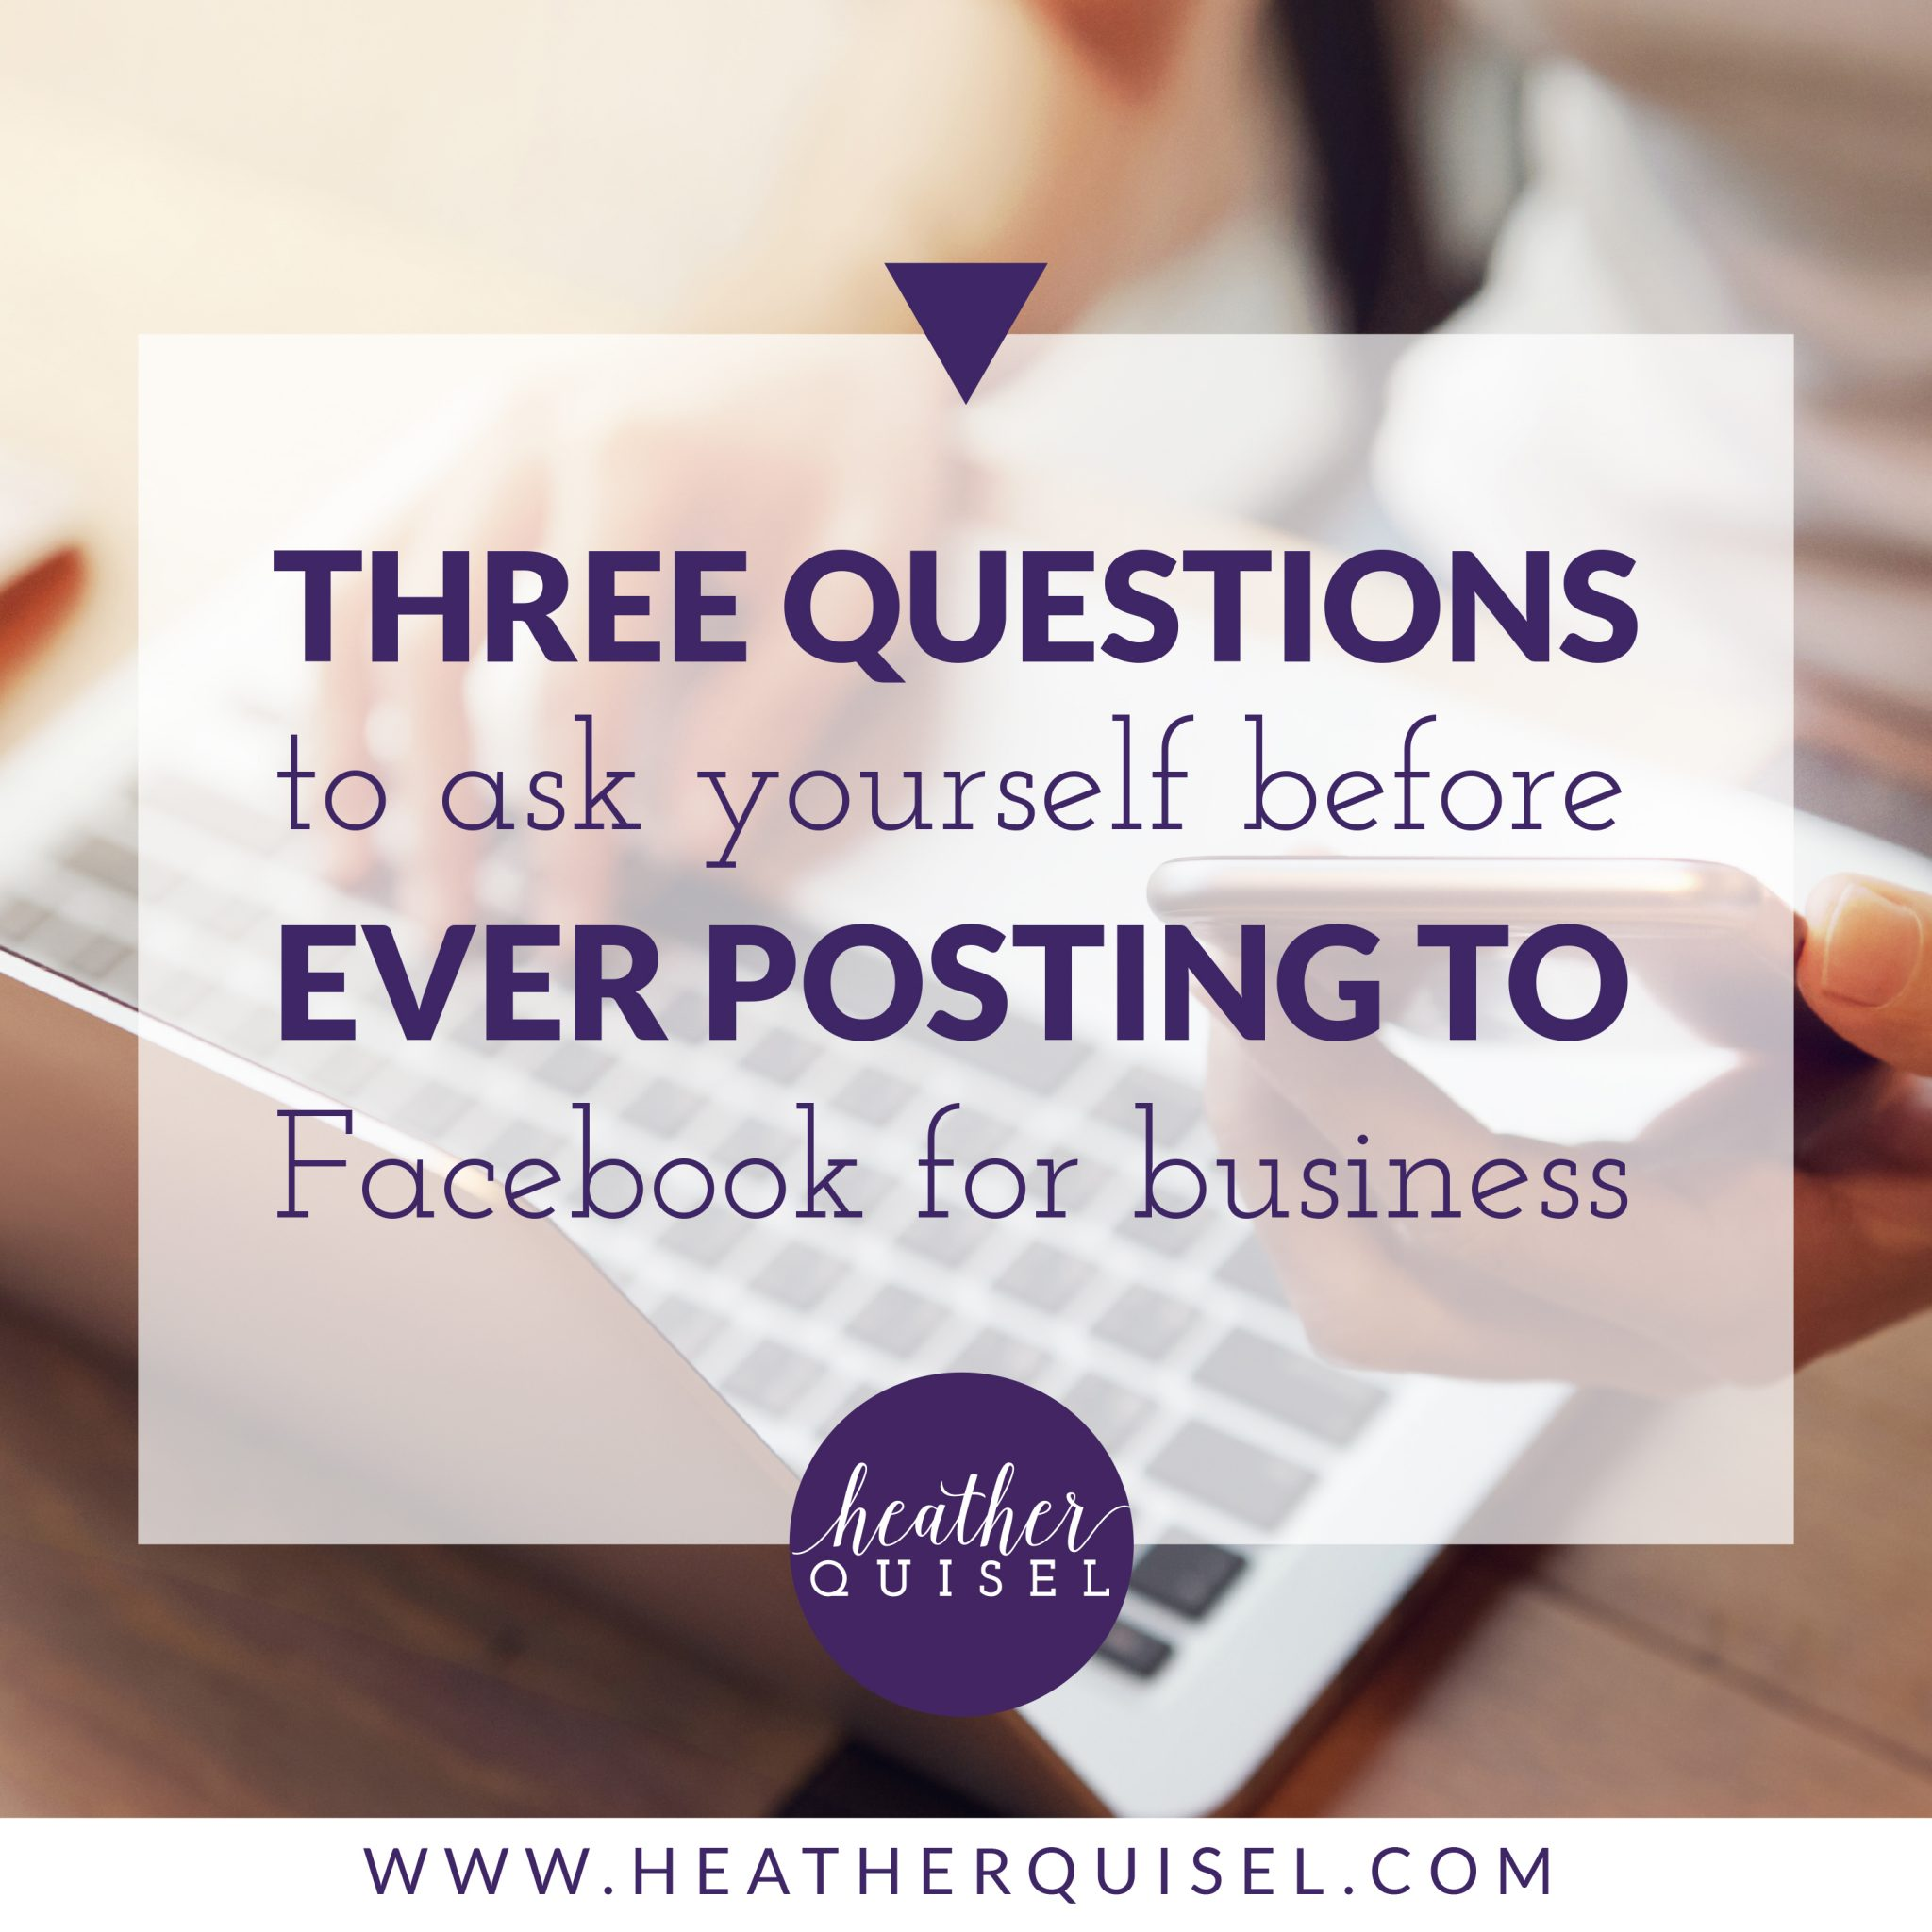 Three questions to ask yourself before ever posting to Facebook for business